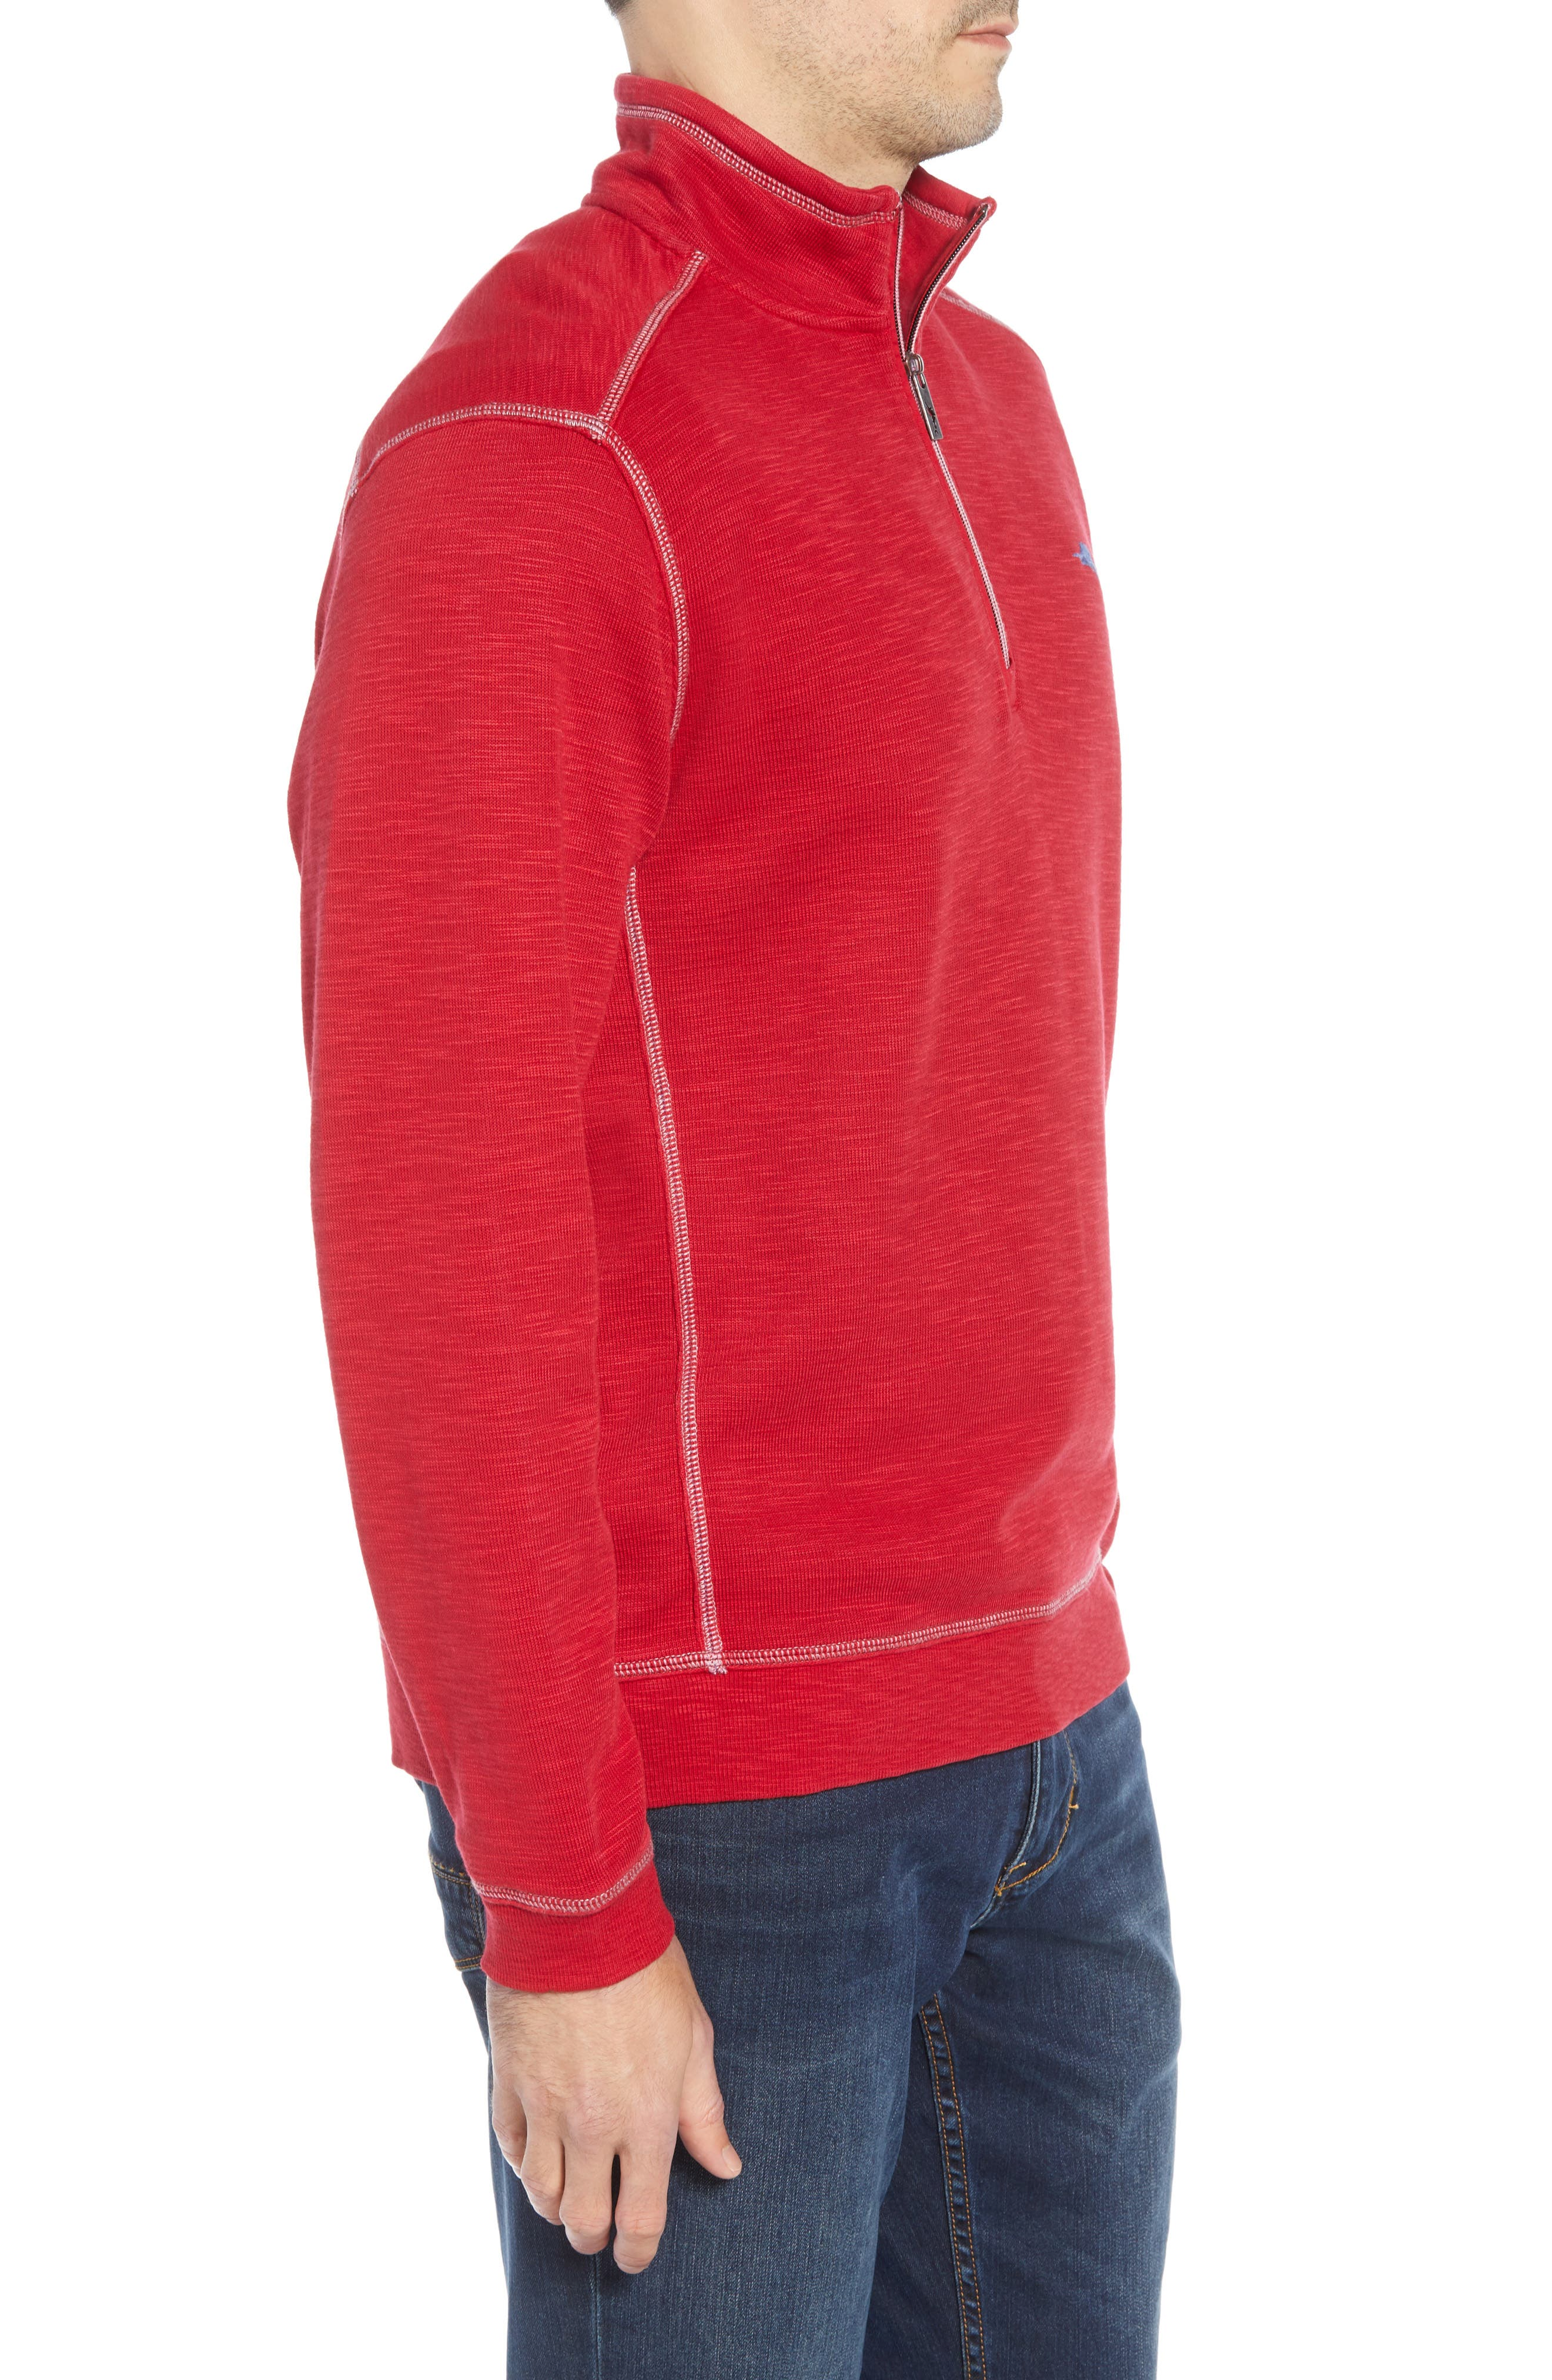 Tobago Bay Half Zip Pullover,                             Alternate thumbnail 3, color,                             SCOOTER RED